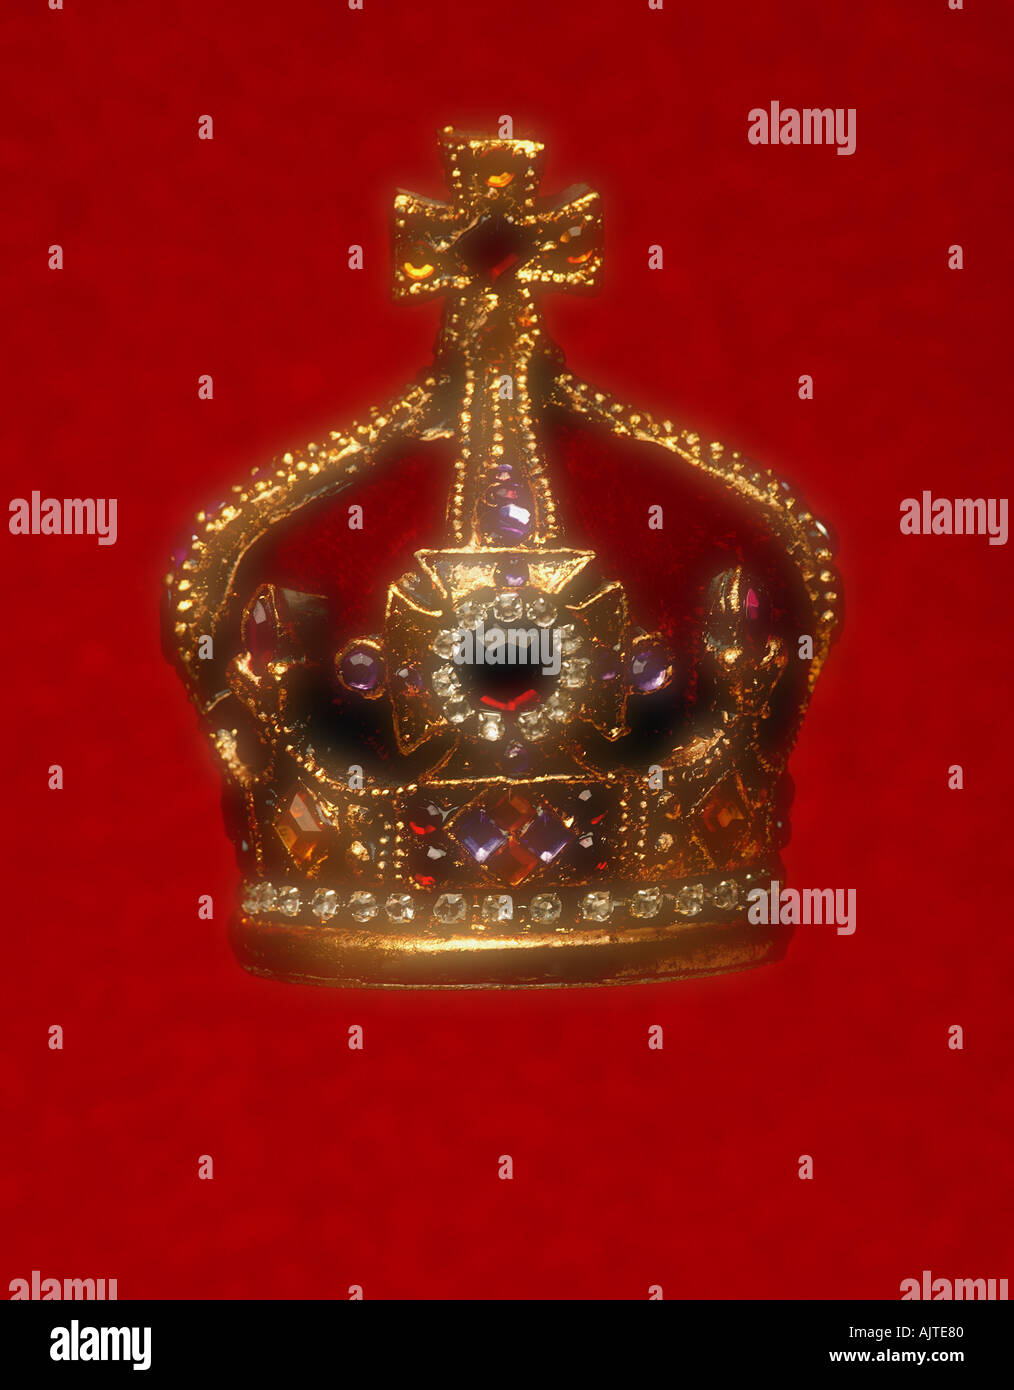 Jeweled crown - Stock Image